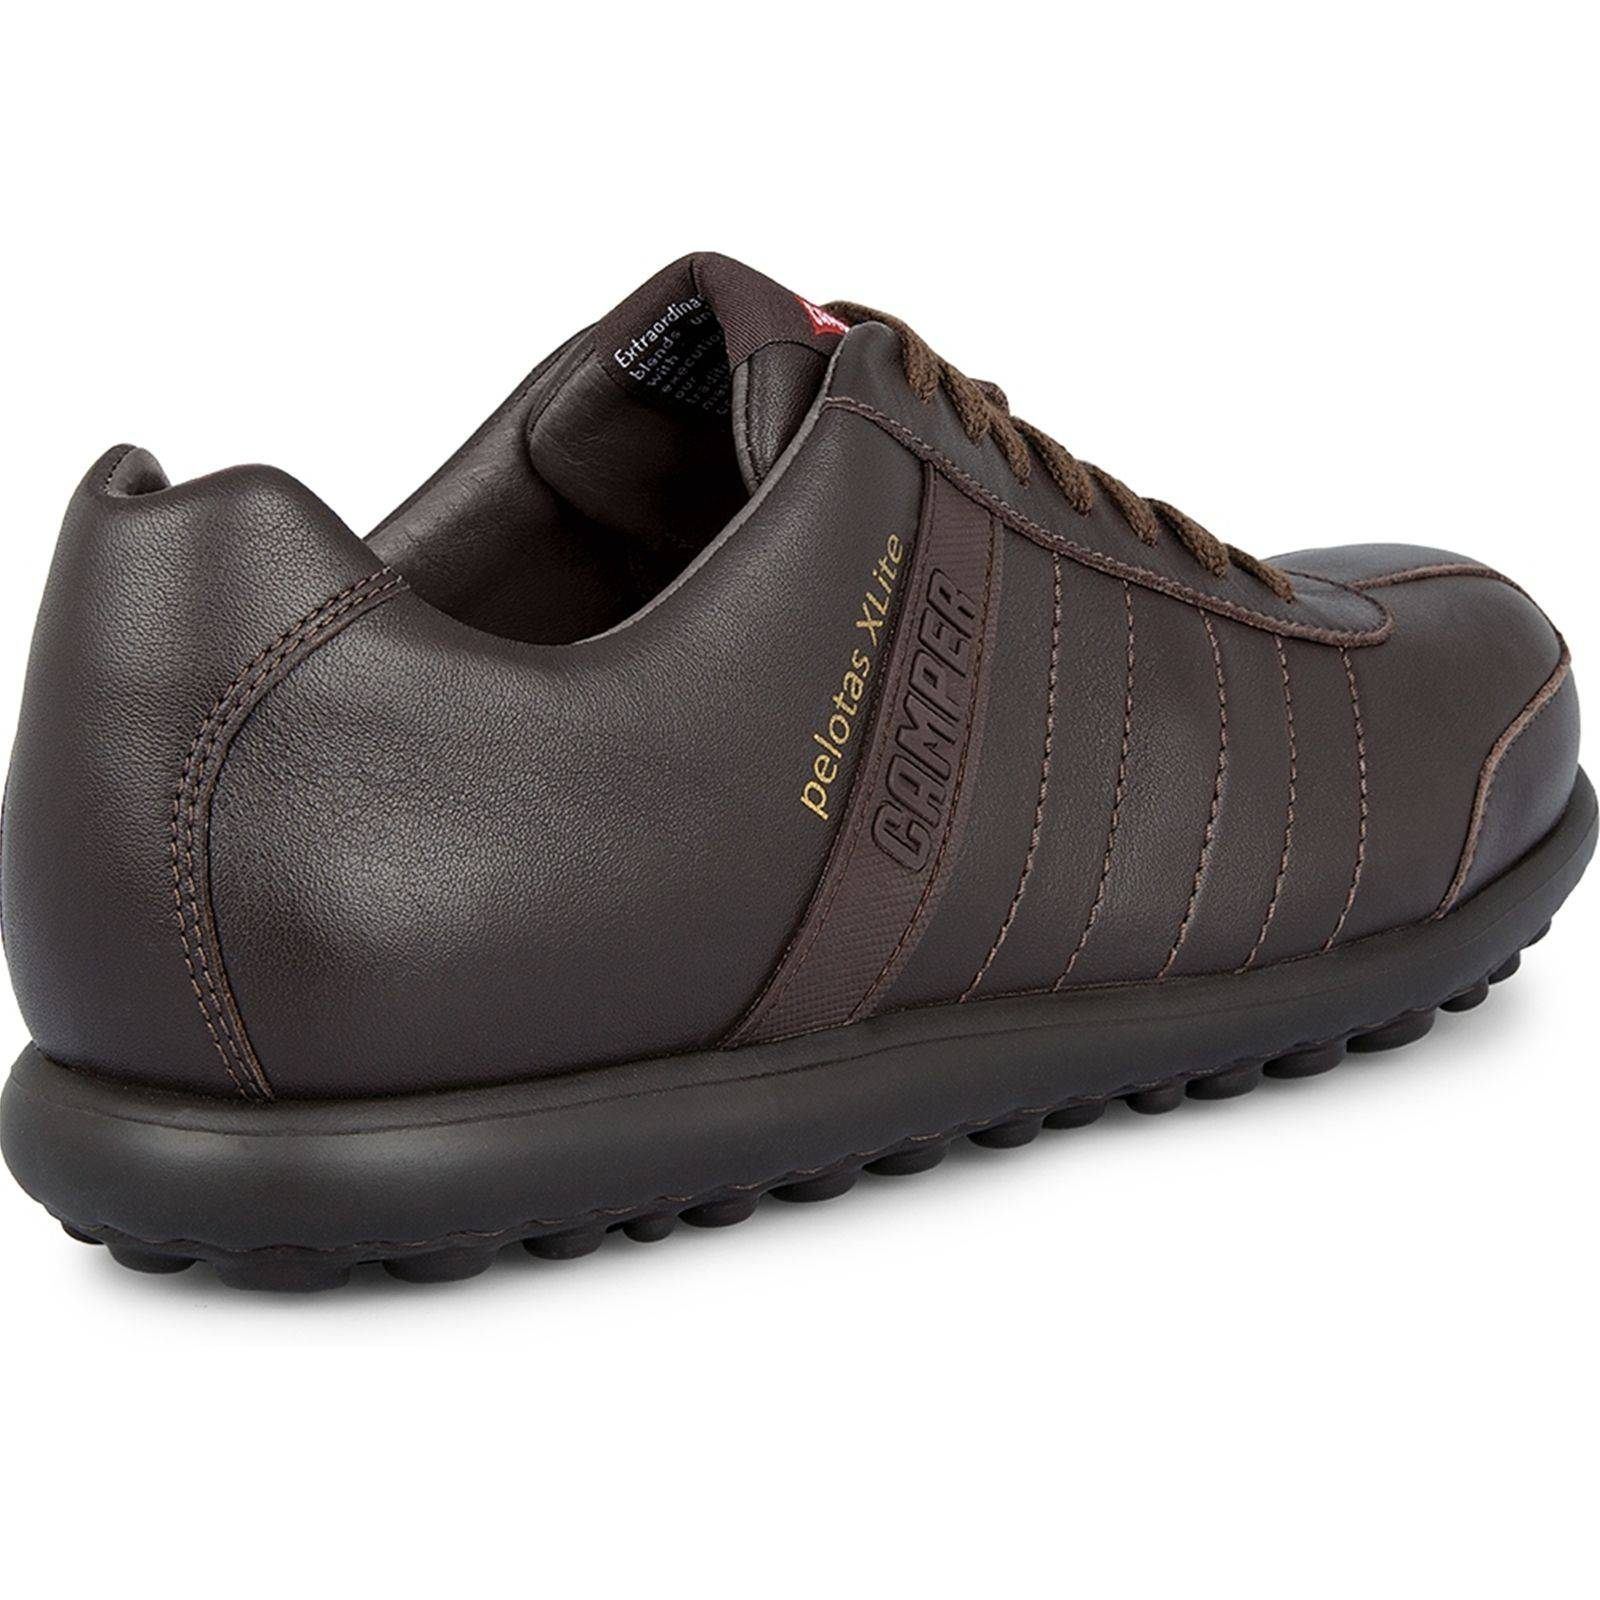 Camper Pelotas - Baskets Mode - en cuir marron